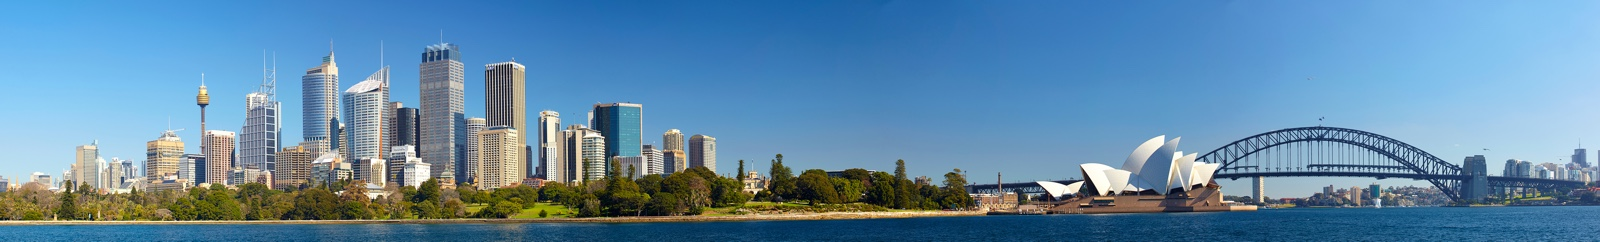 Panoramic sight of City of Sydney